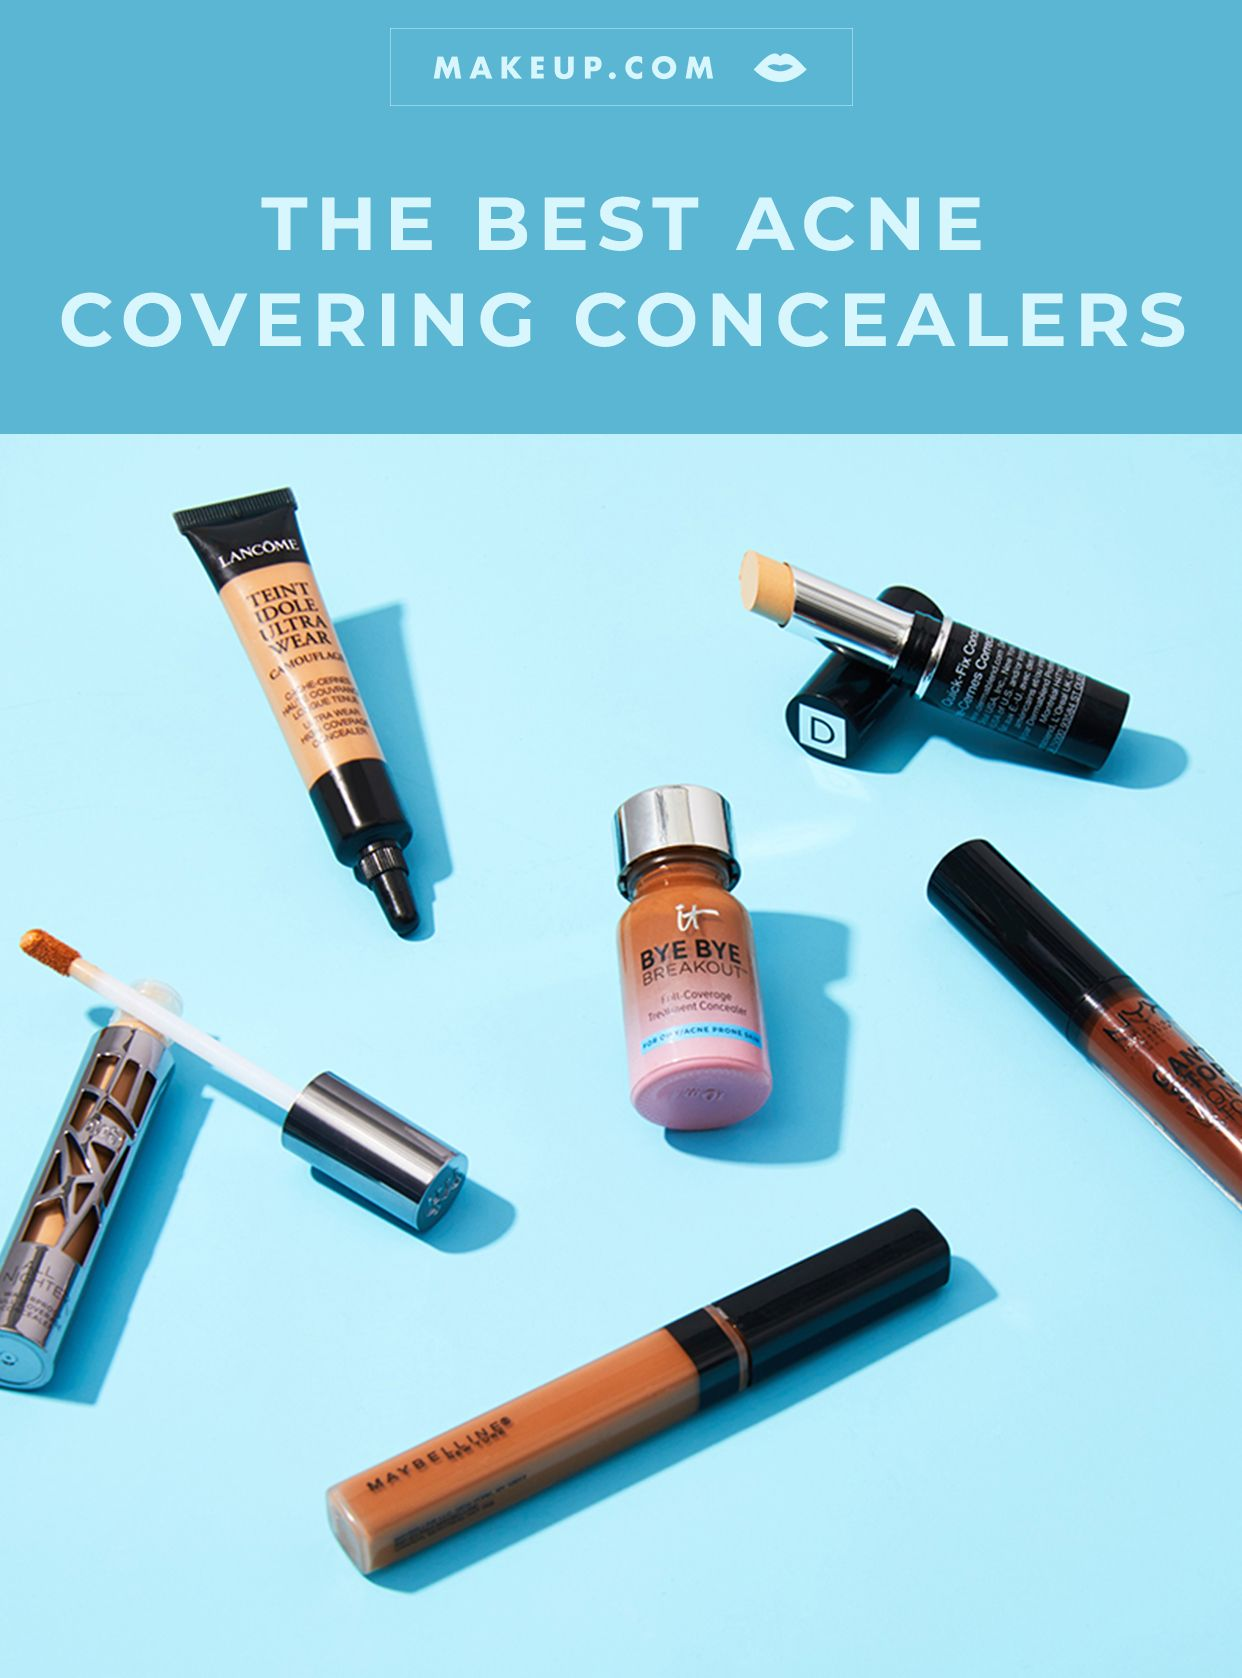 Best Acne Covering Concealers Best concealer for acne